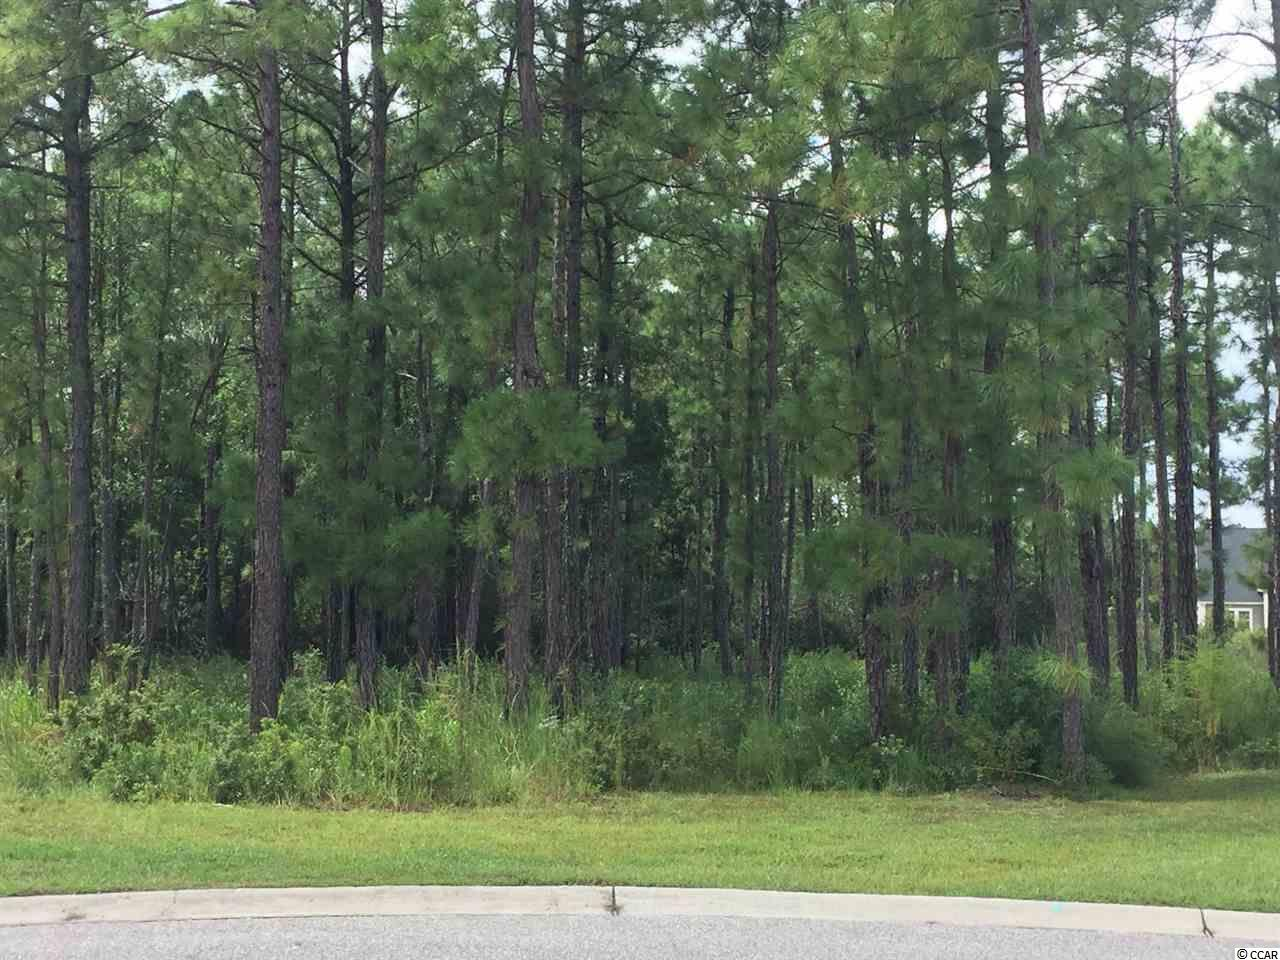 EXCELLENT VALUE FOR THIS DREAM CUL-DE-SAC LOT LOCATED IN WATERFORD PLANTATION! YOU MUST VIEW TO APPRECIATE THE LOCATION!  WATERFORD IS CONVENIENTLY LOCATED NEAR SCHOOLS, SHOPPING, POST OFFICE, AIRPORT, GOLF & MORE! DON'T DELAY!!